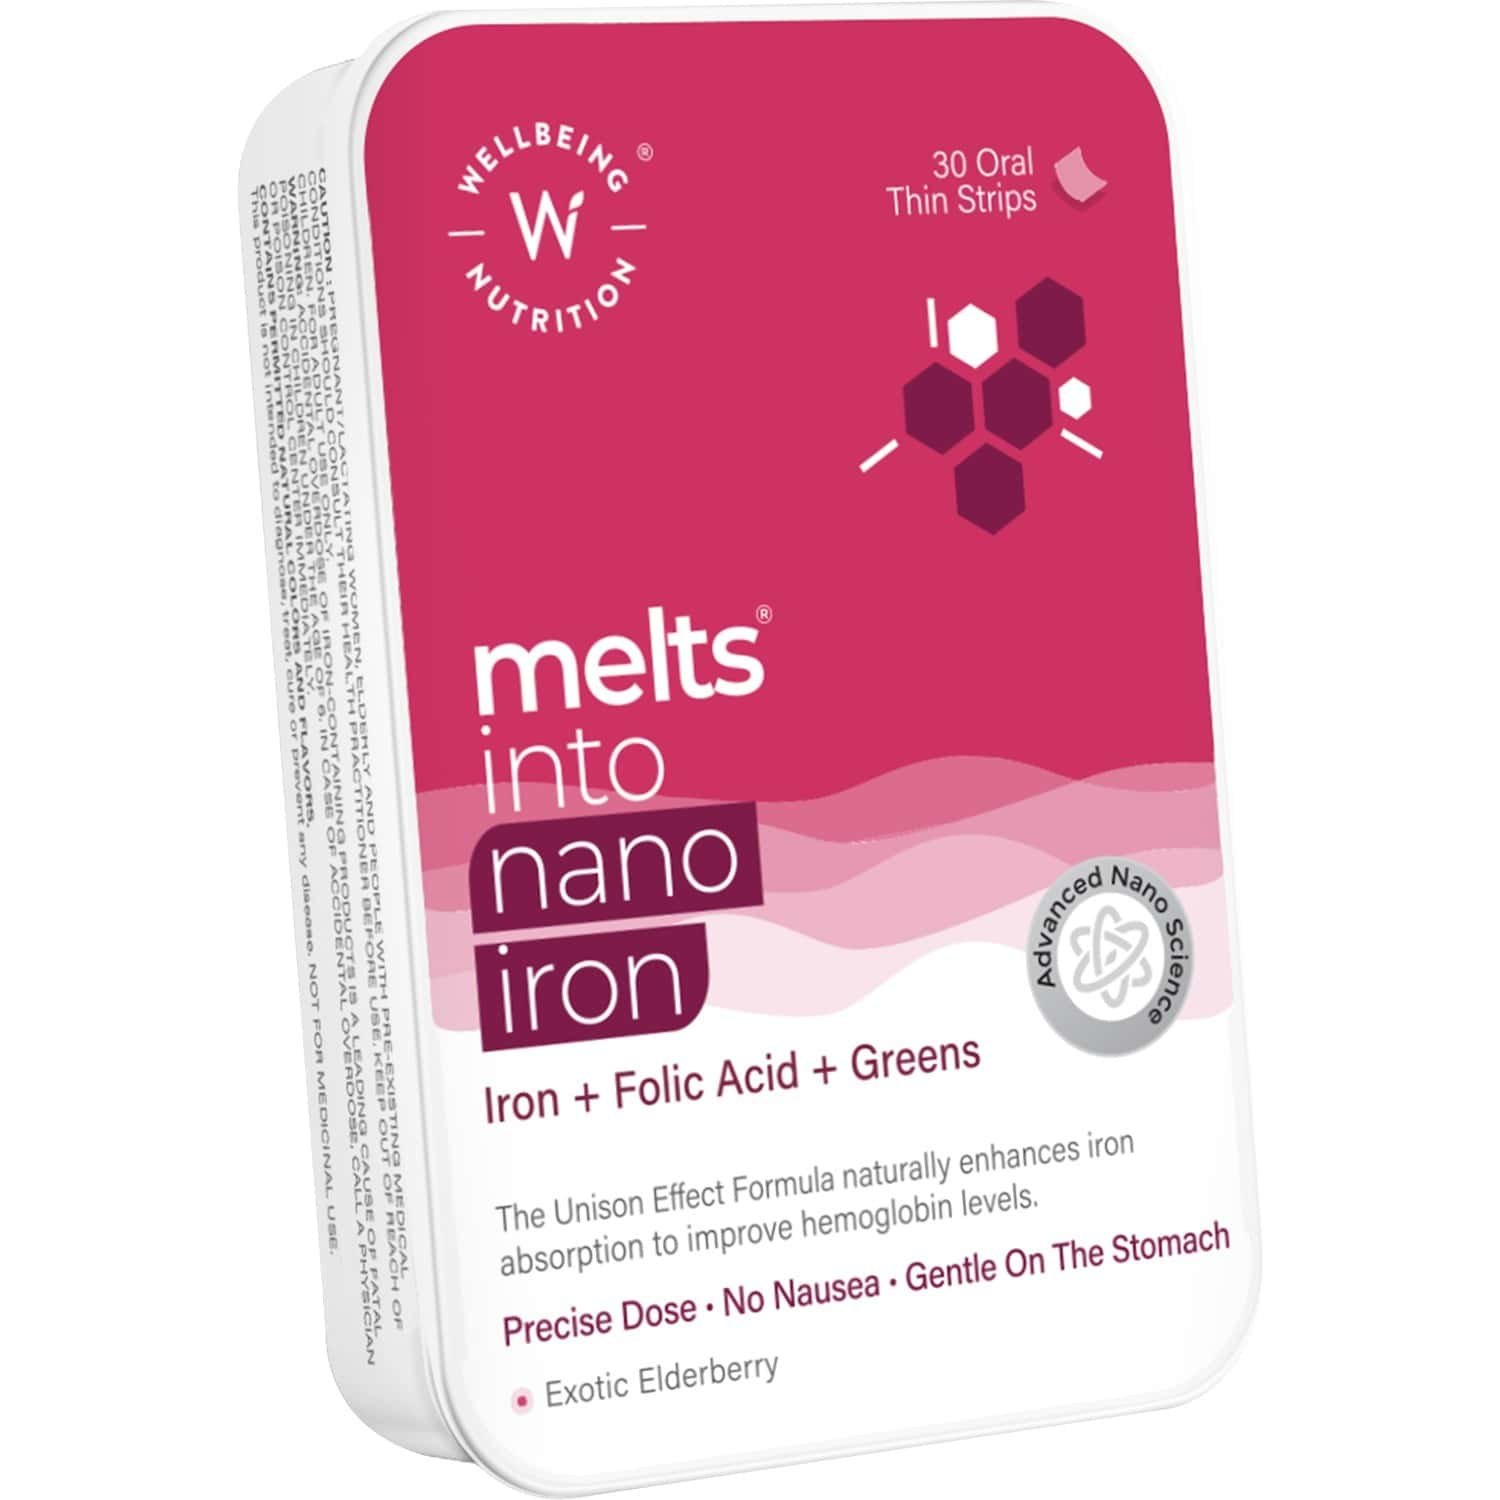 Wellbeing Nutrition Melts Nano Iron - 30 Oral Strips Box